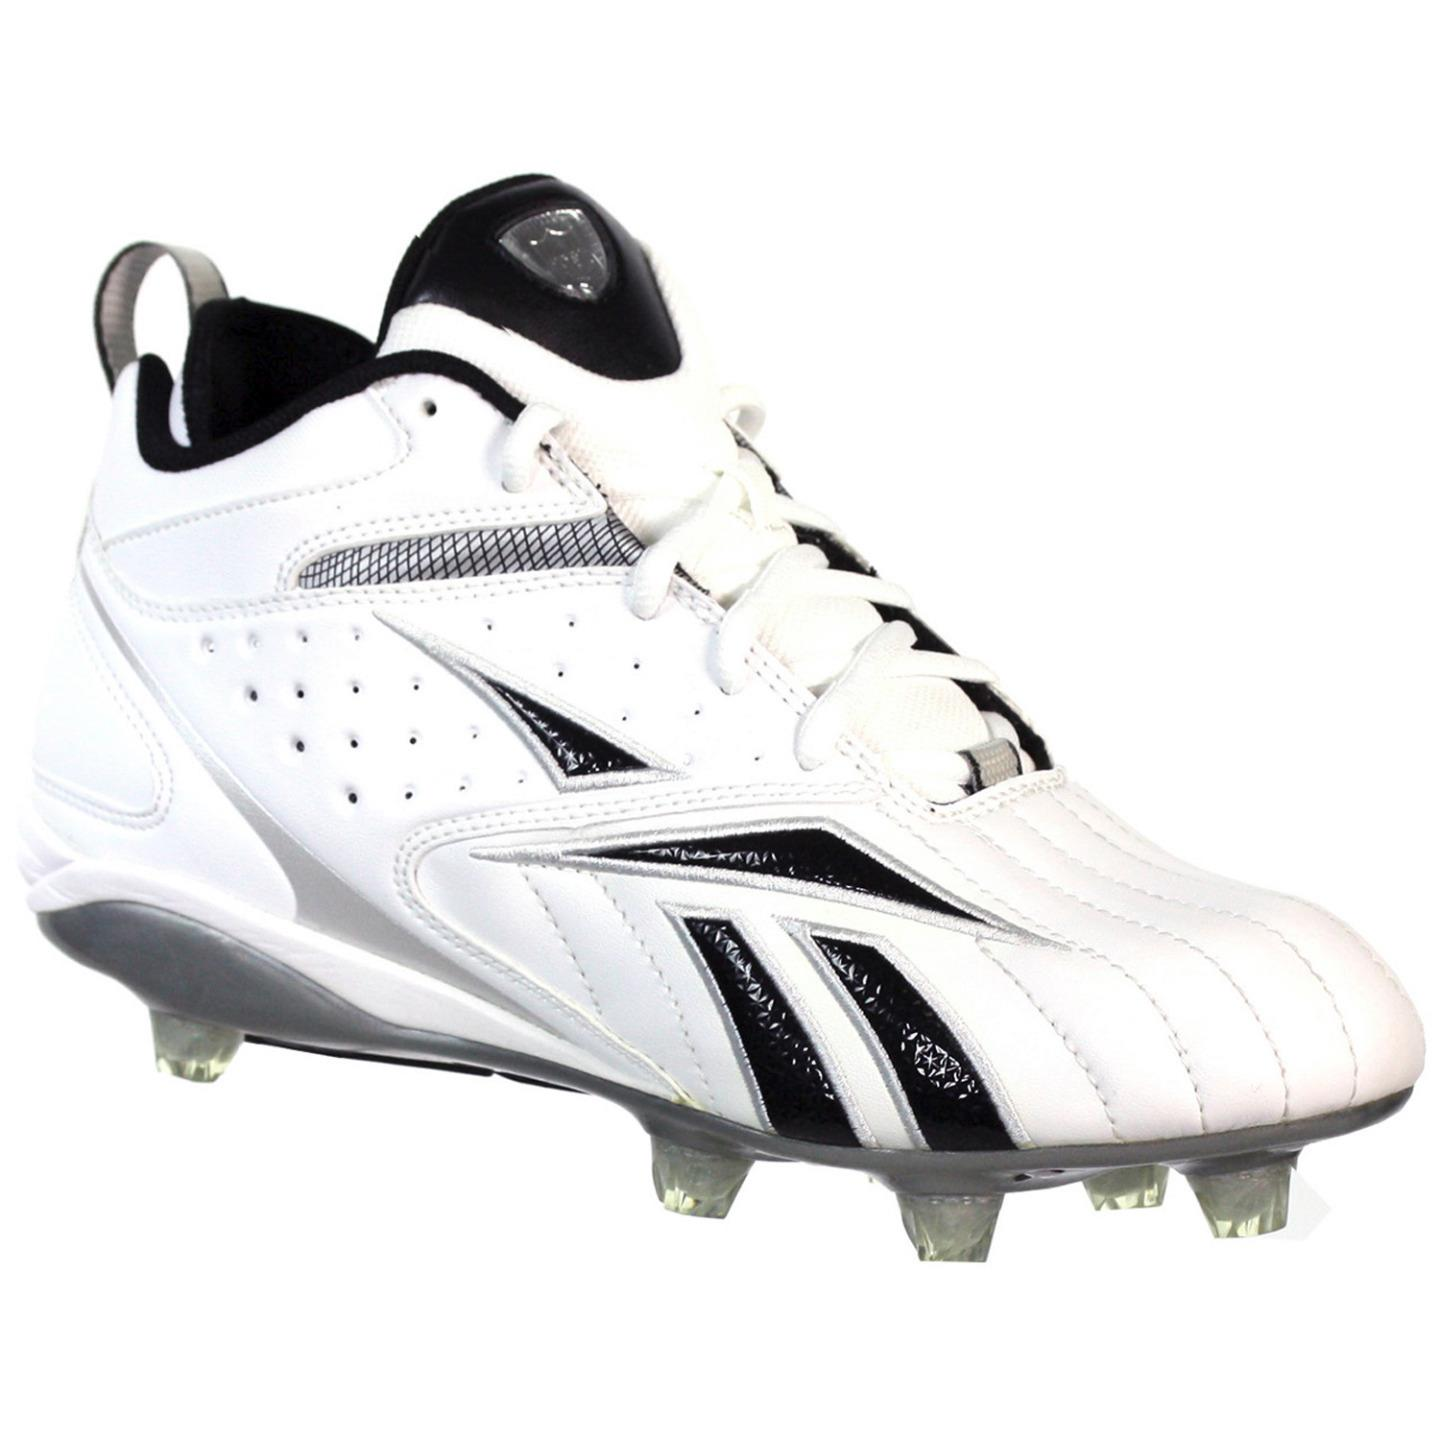 REEBOK NFL FULL BLITZ D KFS MENS FOOTBALL CLEATS WHITE BLACK 12.5